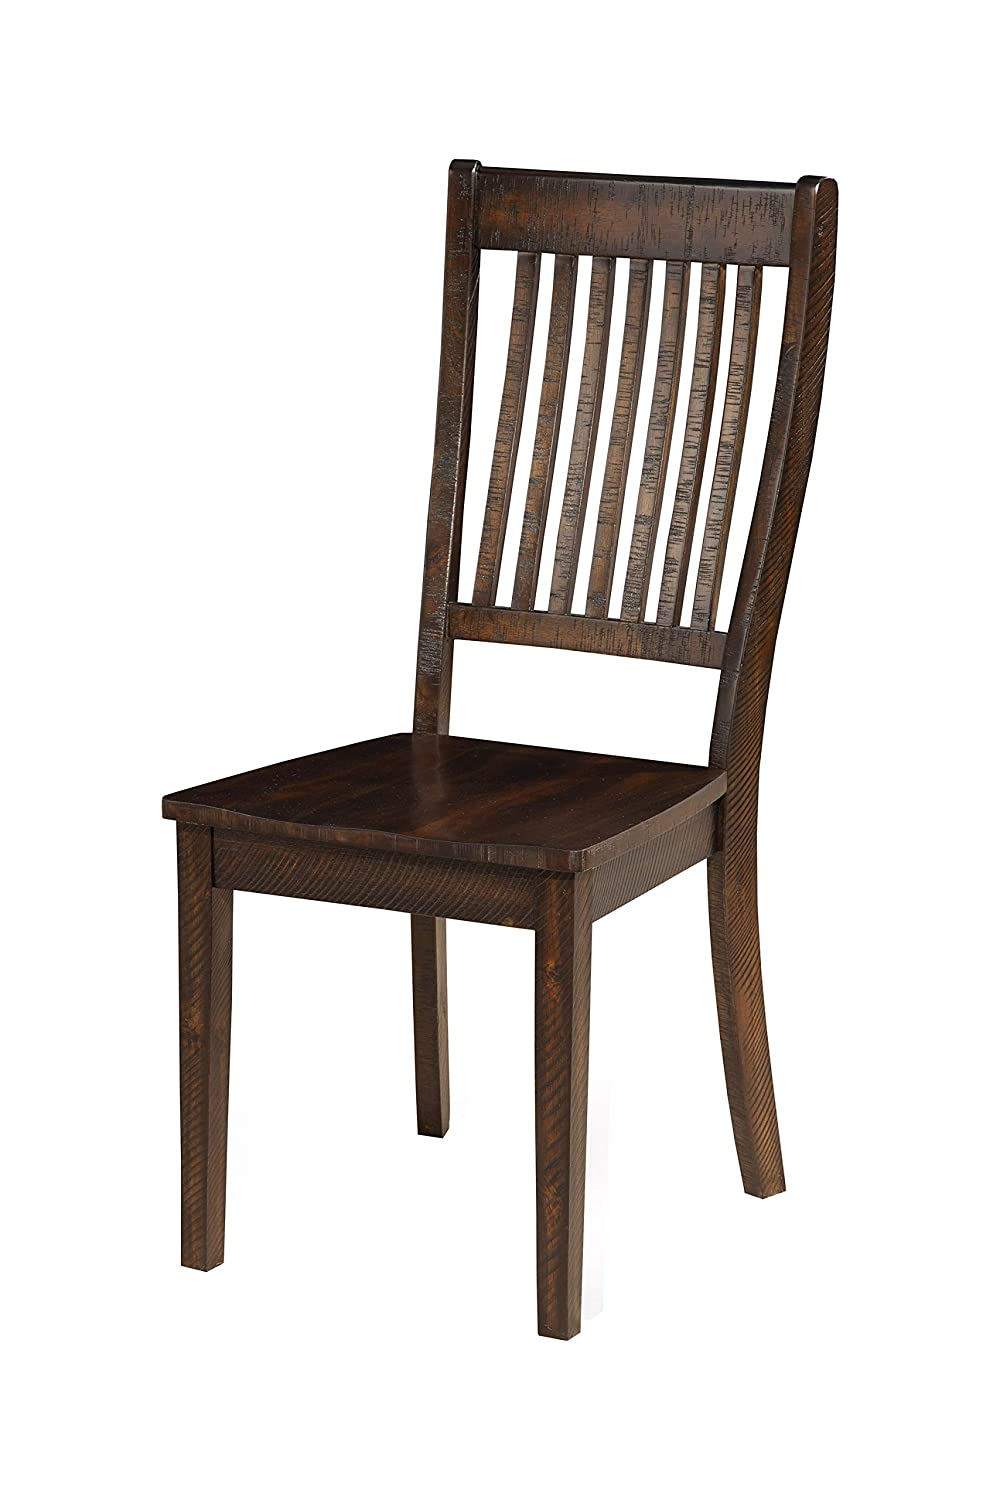 Amazon com alpine furniture acacia wood side chairs with slatted back set of two espresso brown chairs